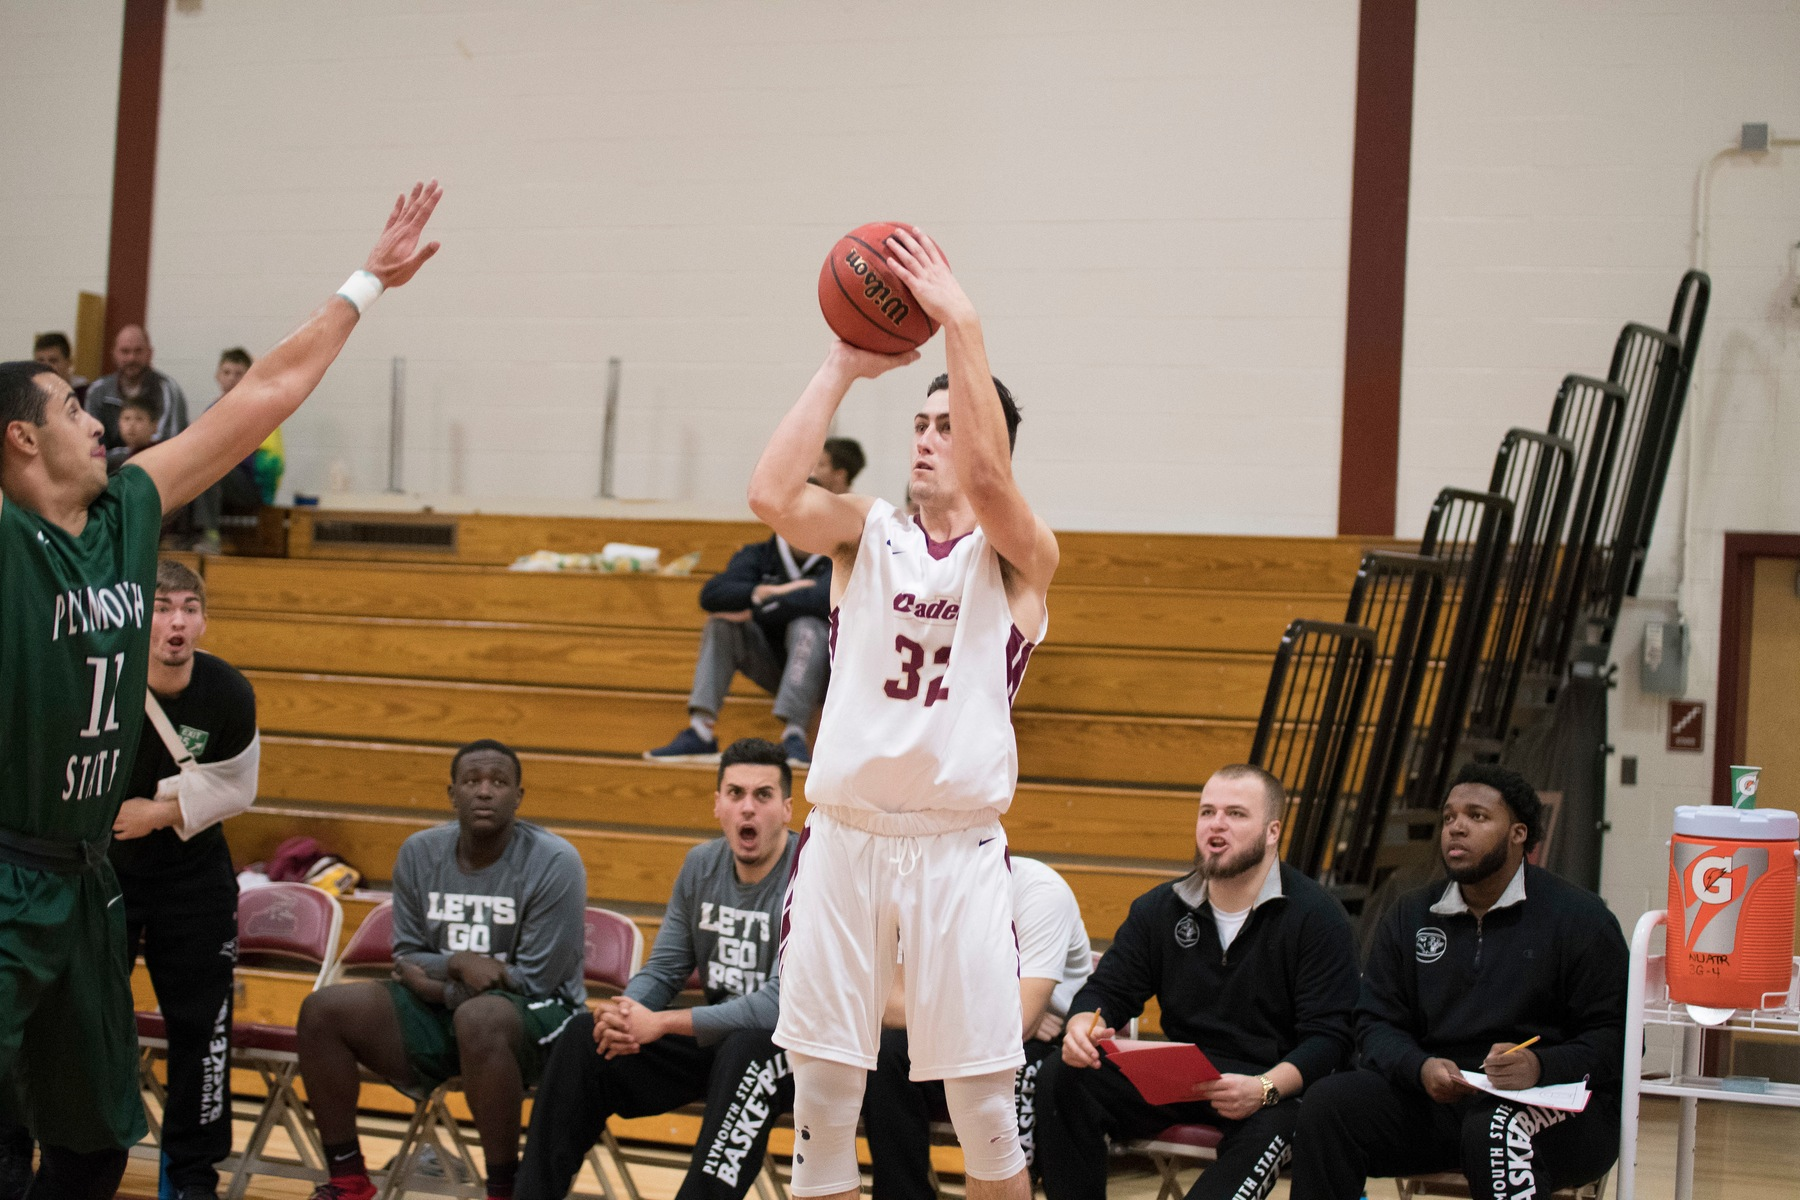 Men's Basketball: Cadets fall on the road to Plymouth State, 84-74